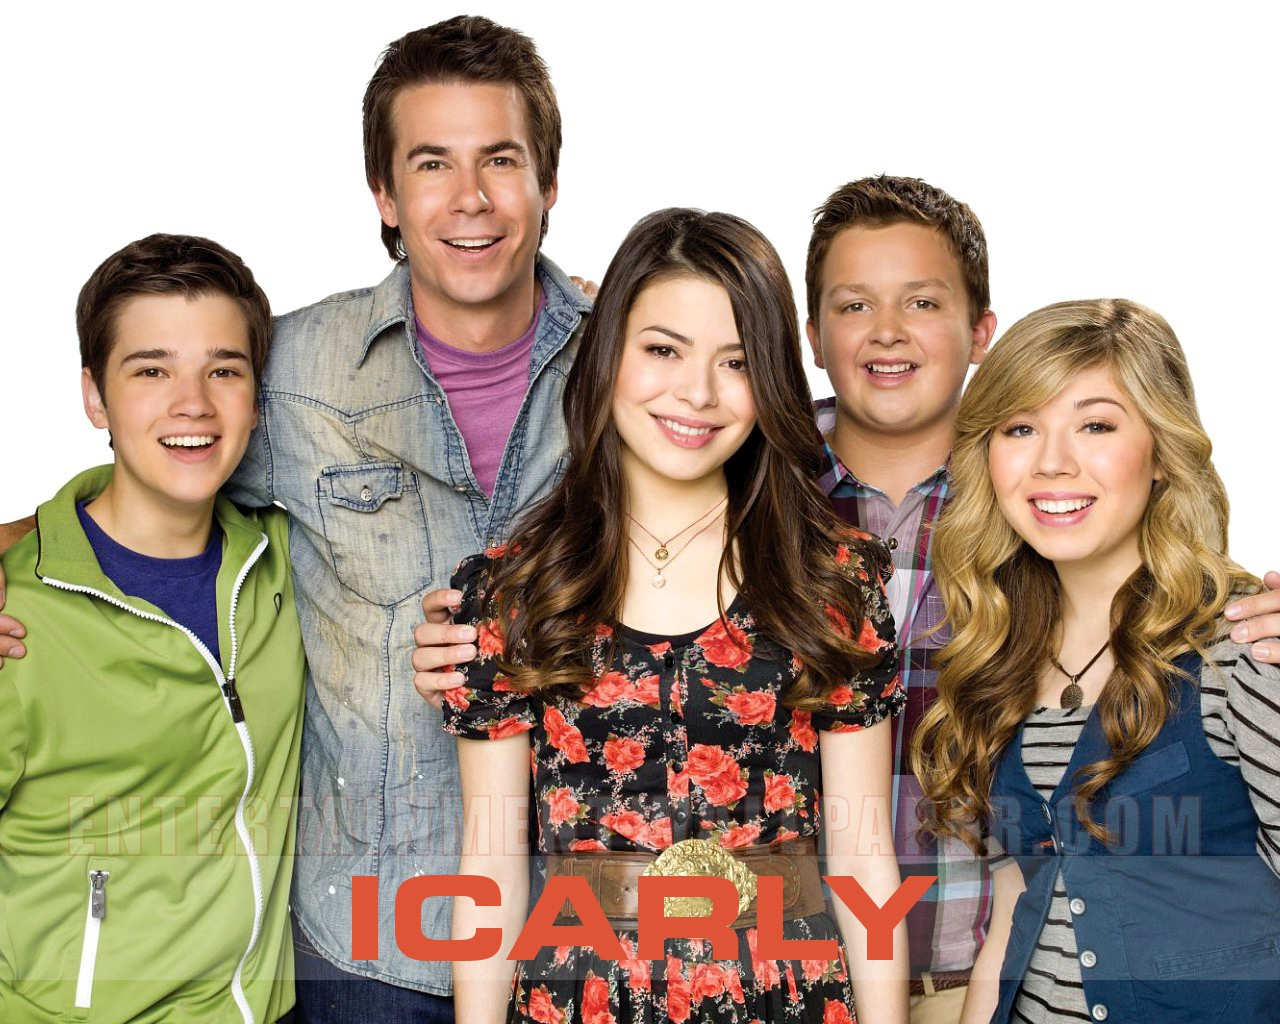 Icarly Tapeta Na Pulpit 9 Fd